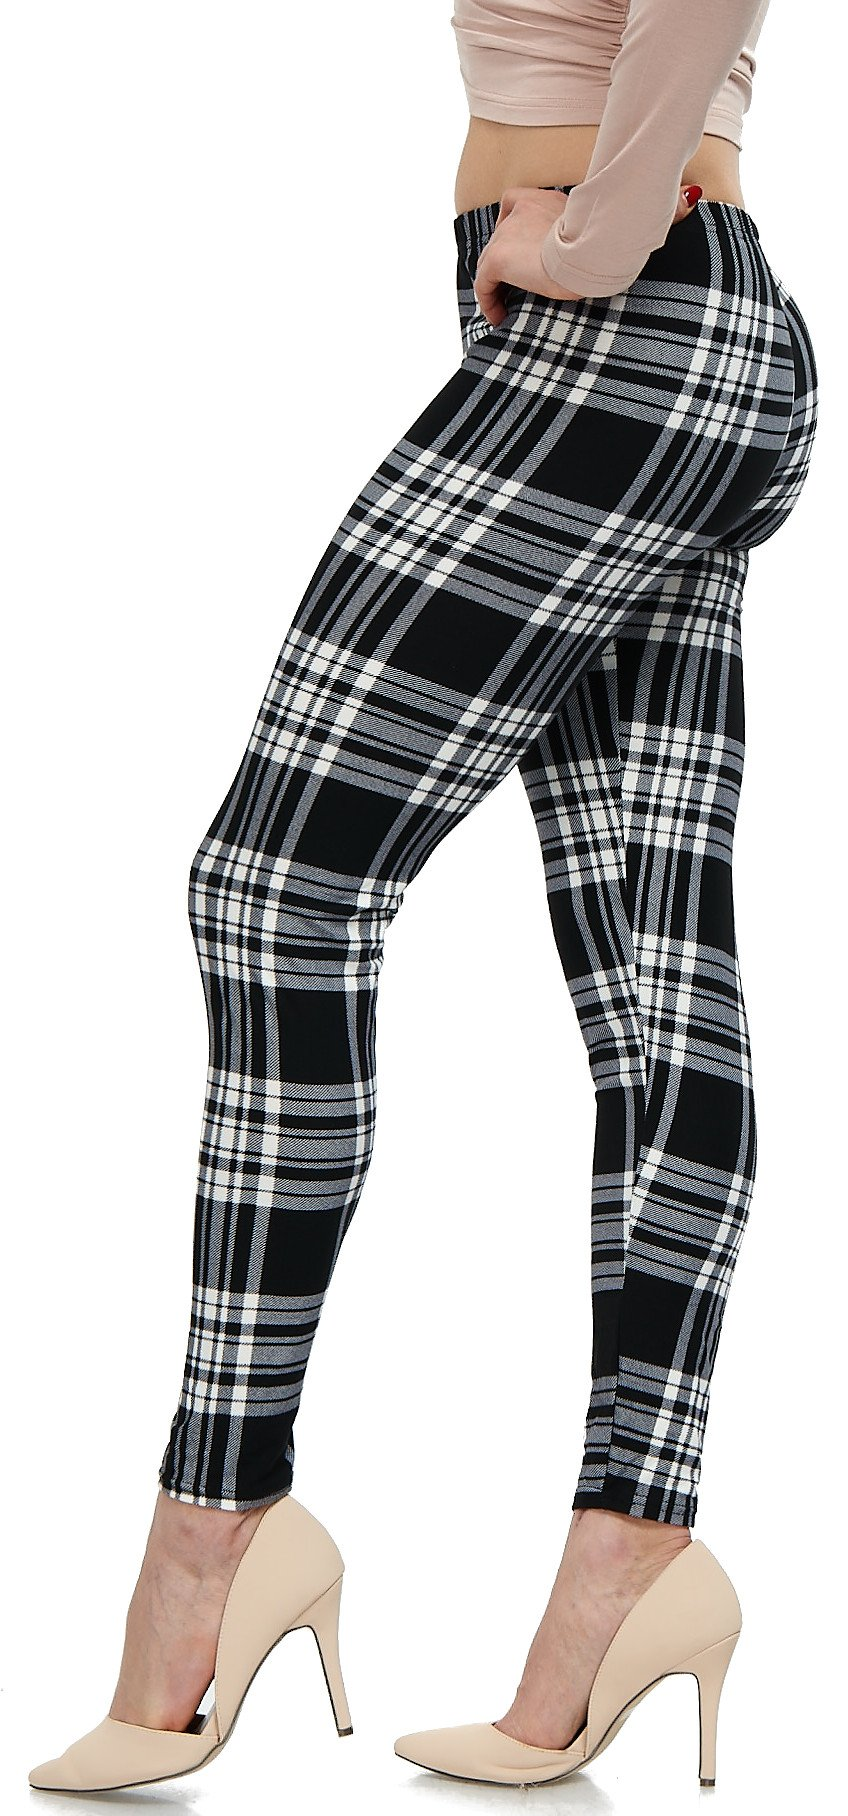 LMB Lush Moda Extra Soft Leggings with Designs- Variety of Prints - 707F Black Plaid B5